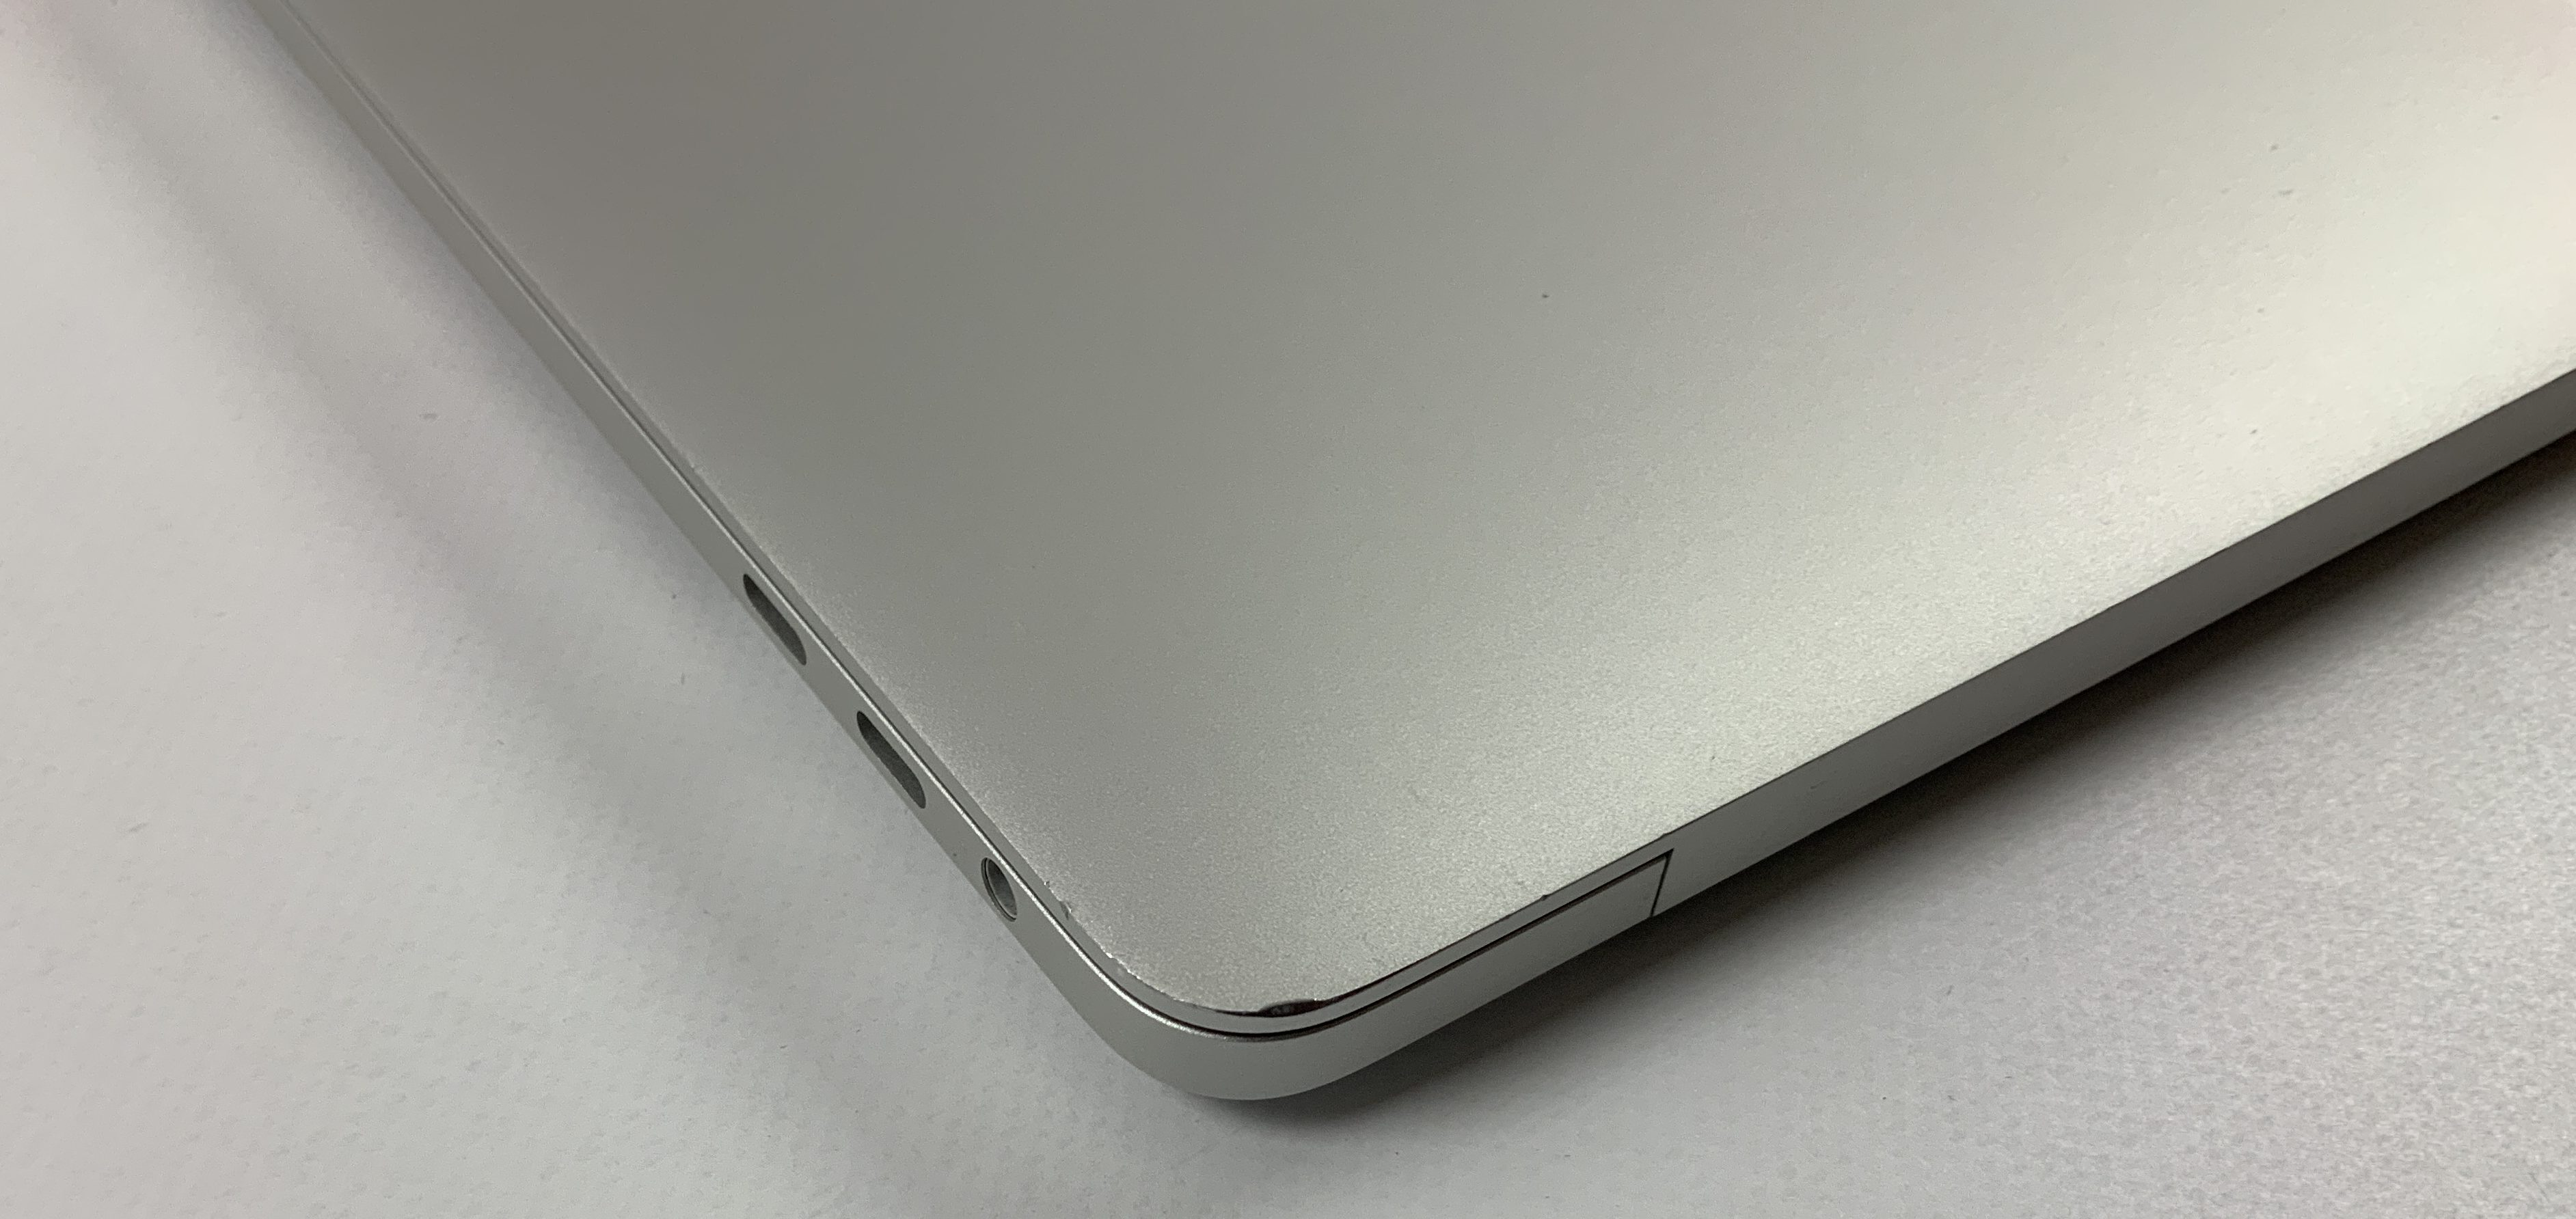 "MacBook Pro 13"" 4TBT Mid 2018 (Intel Quad-Core i5 2.3 GHz 8 GB RAM 512 GB SSD), Silver, Intel Quad-Core i5 2.3 GHz, 8 GB RAM, 512 GB SSD, image 4"